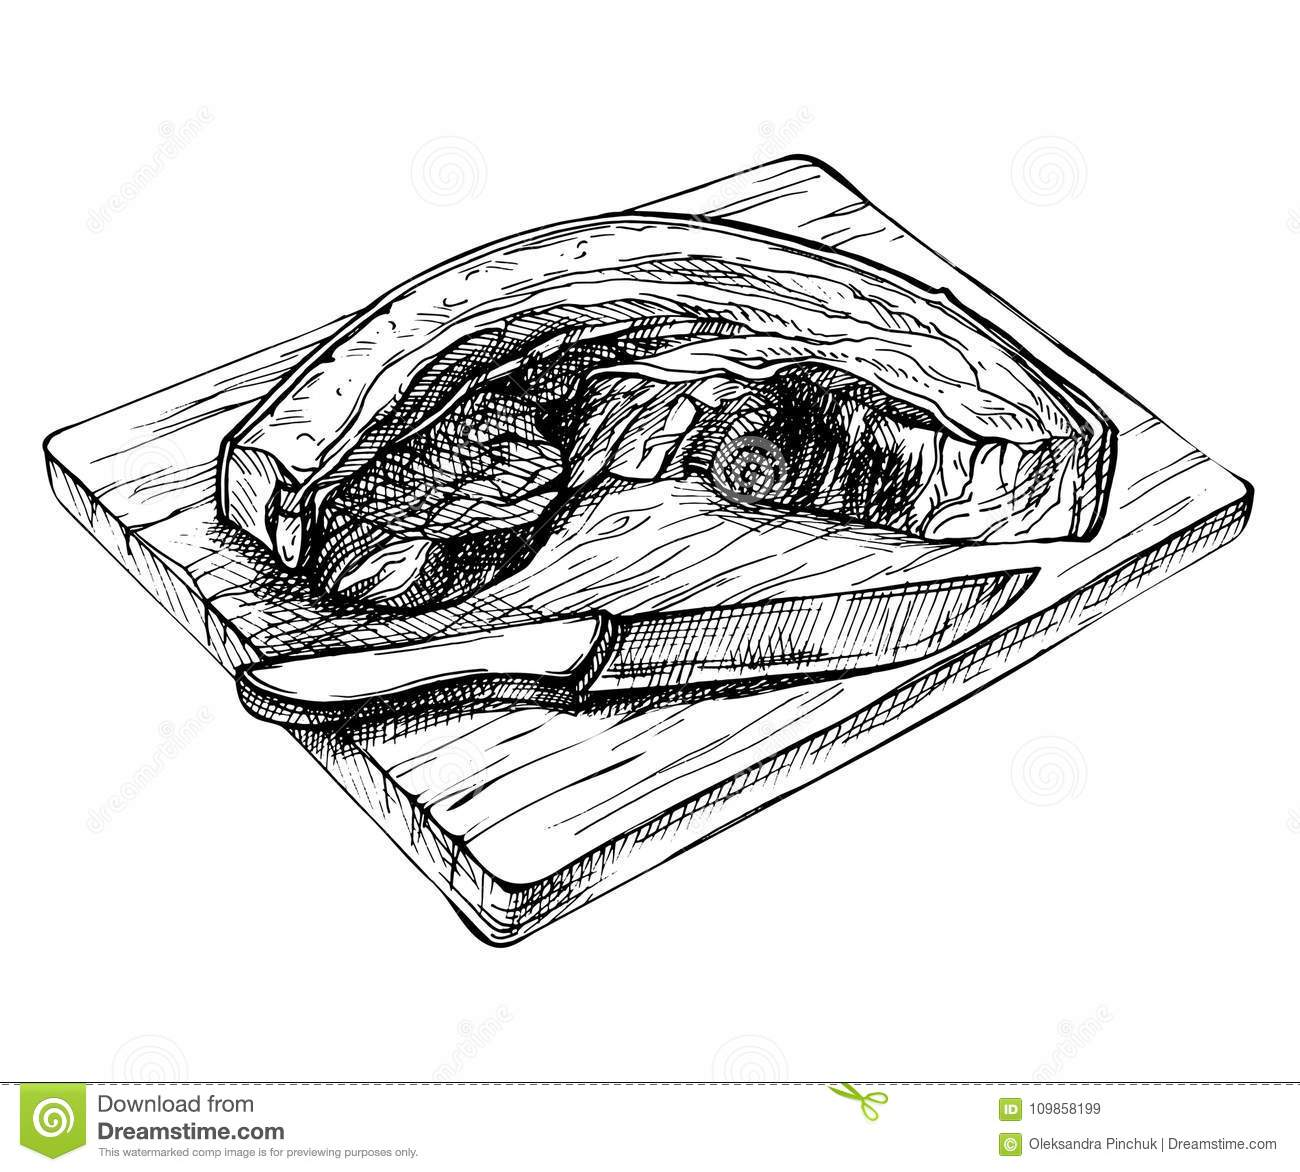 sketch fresh raw pork piece hand drawn sliced belly wooden board detailed ink meat illustration 109858199 sketch fresh raw pork piece hand drawn sliced pork belly on wooden